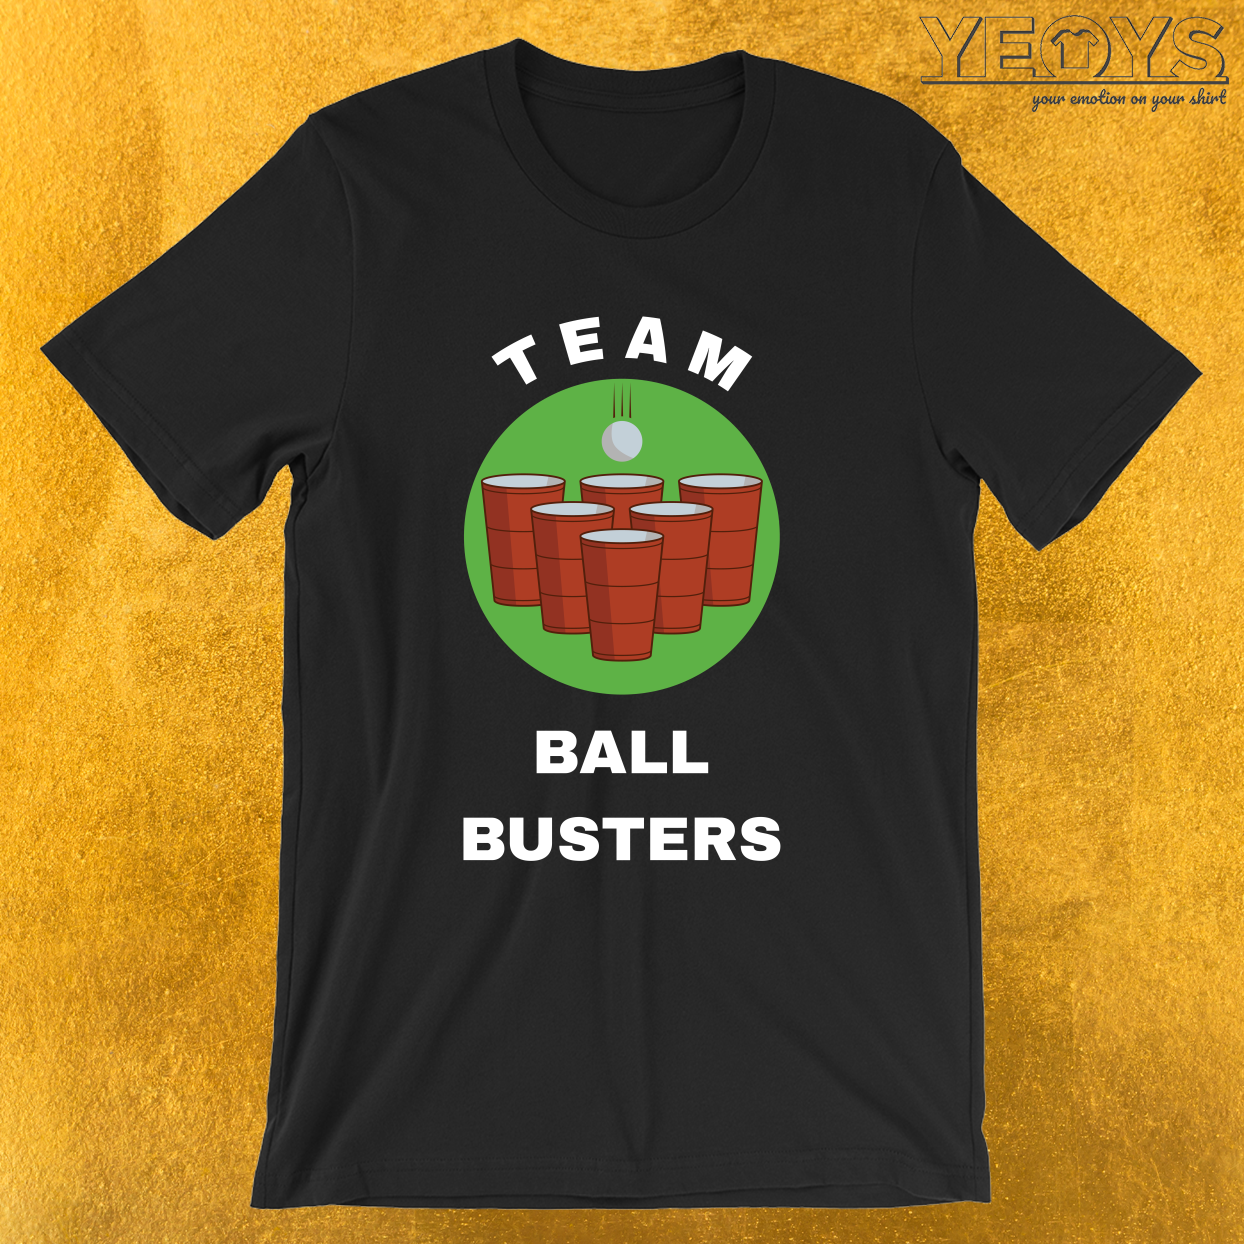 USA Beer Pong Team – Team Ball Busters Tee